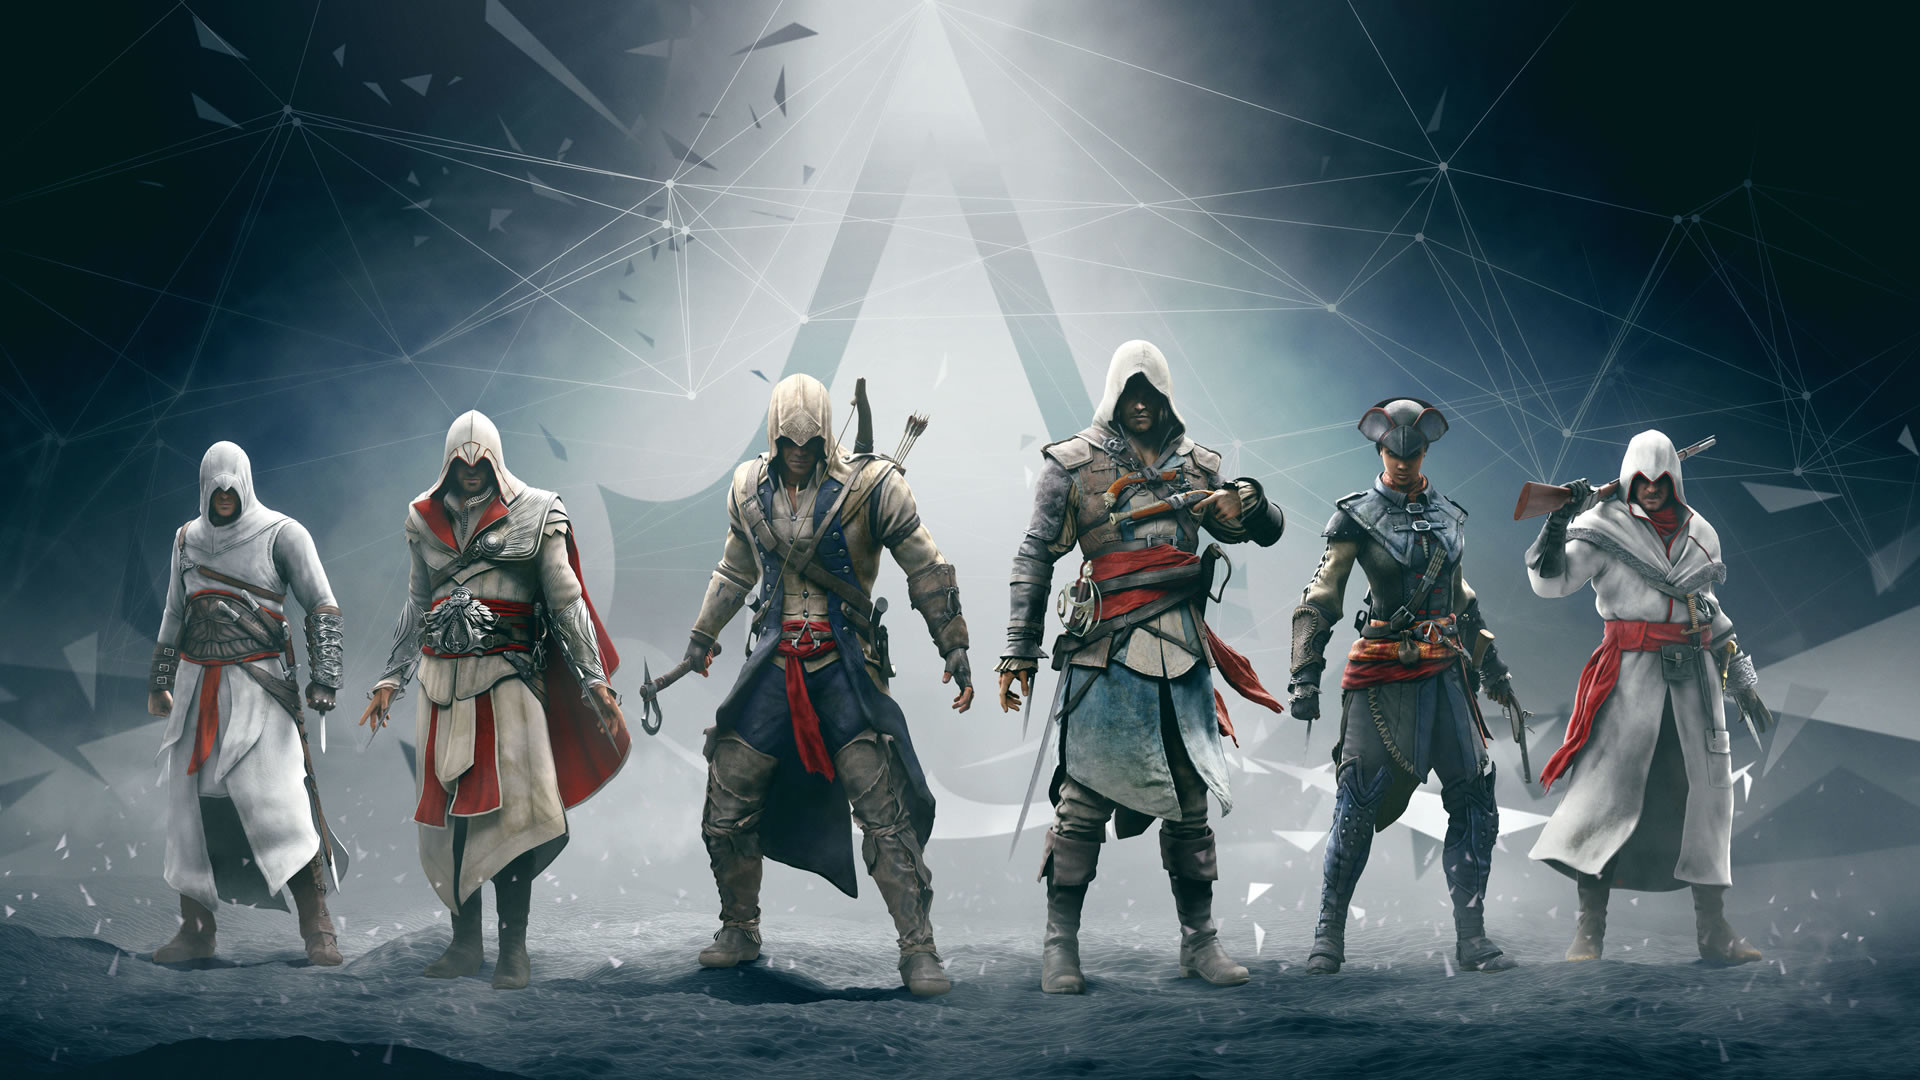 1920x1080 Computerspiele - Assassin's Creed Altair (Assassin's Creed) Ezio (Assassin's  Creed) Connor (